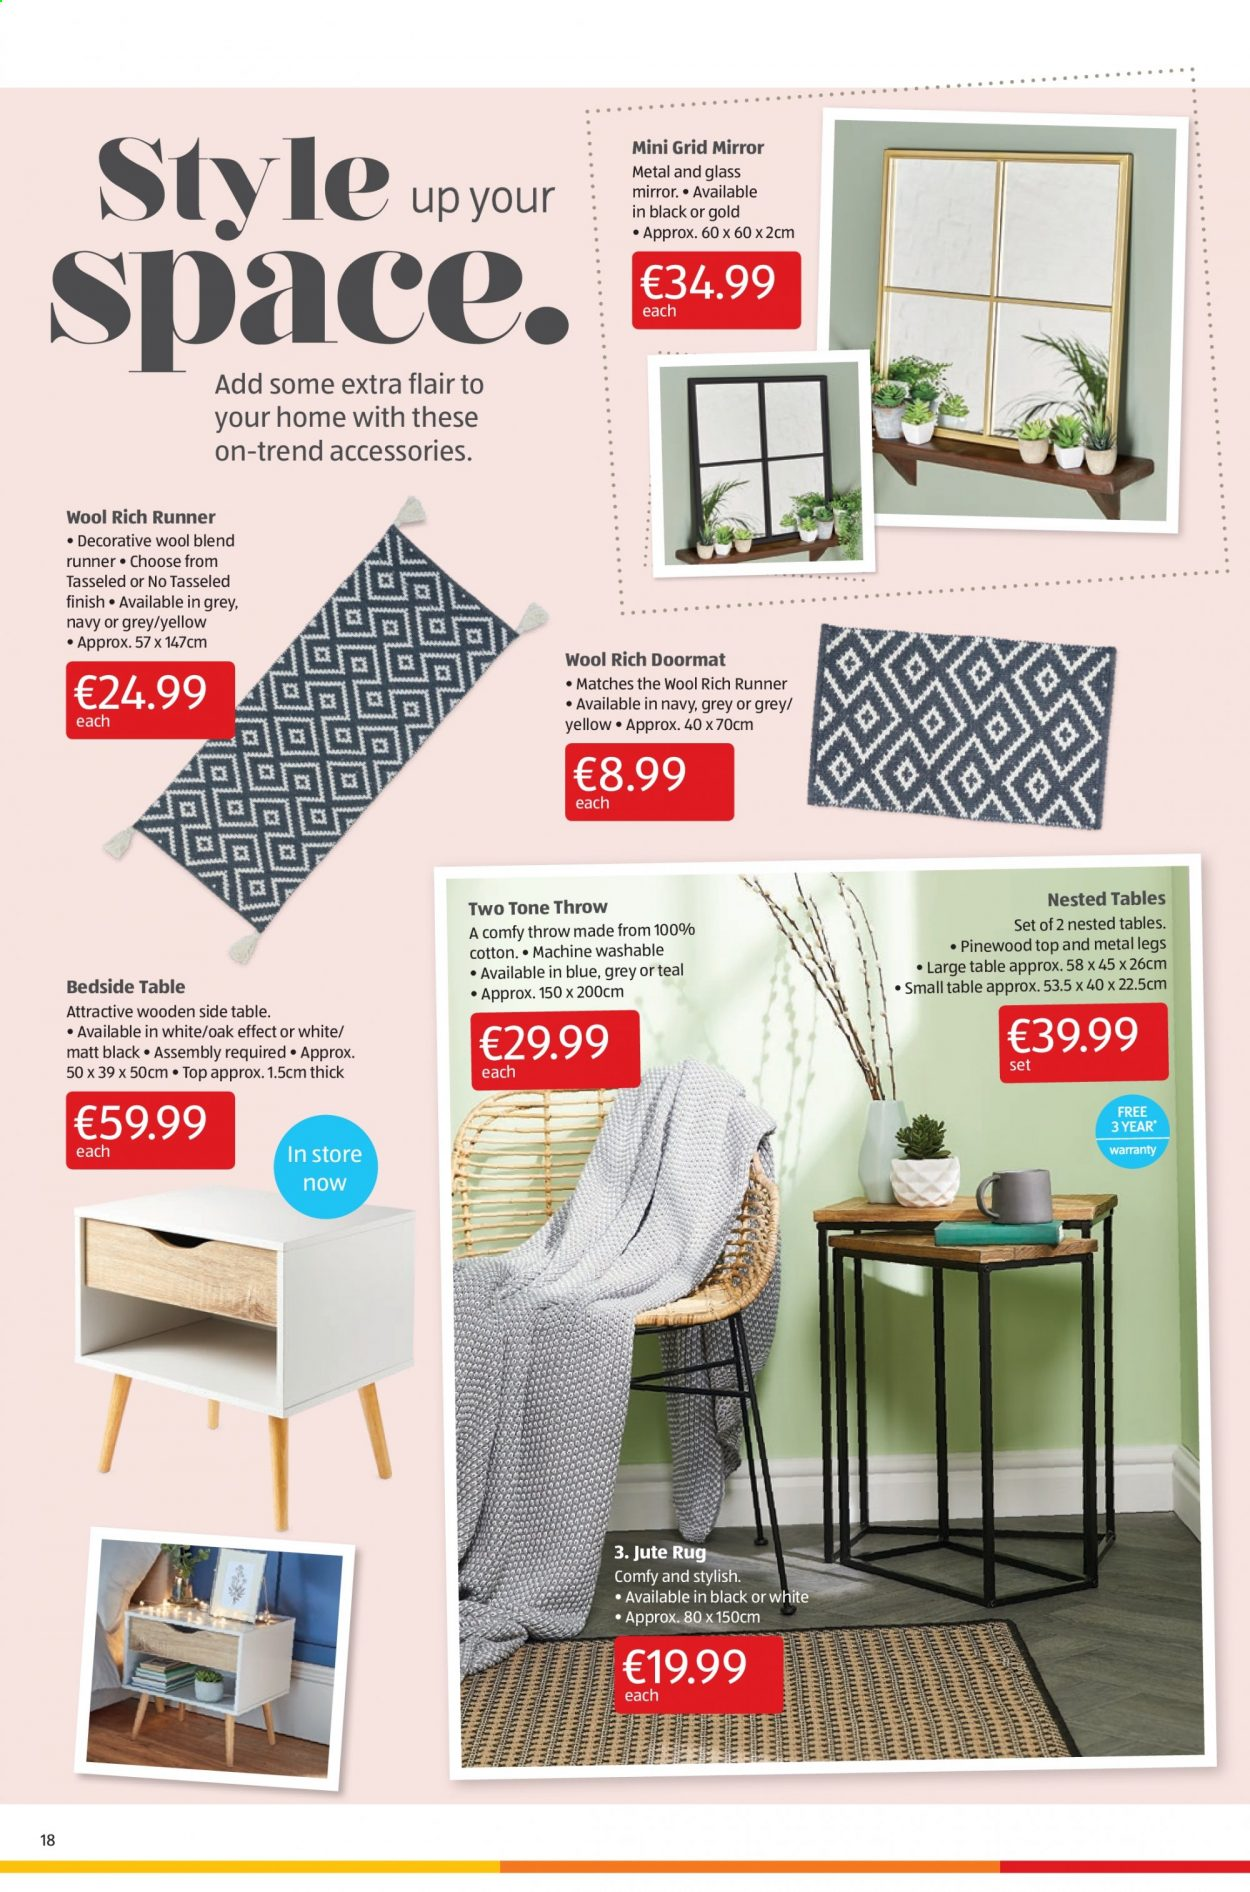 Picture of: Aldi Leaflet 30 7 2020 2 8 2020 Page 18 My Leaflet